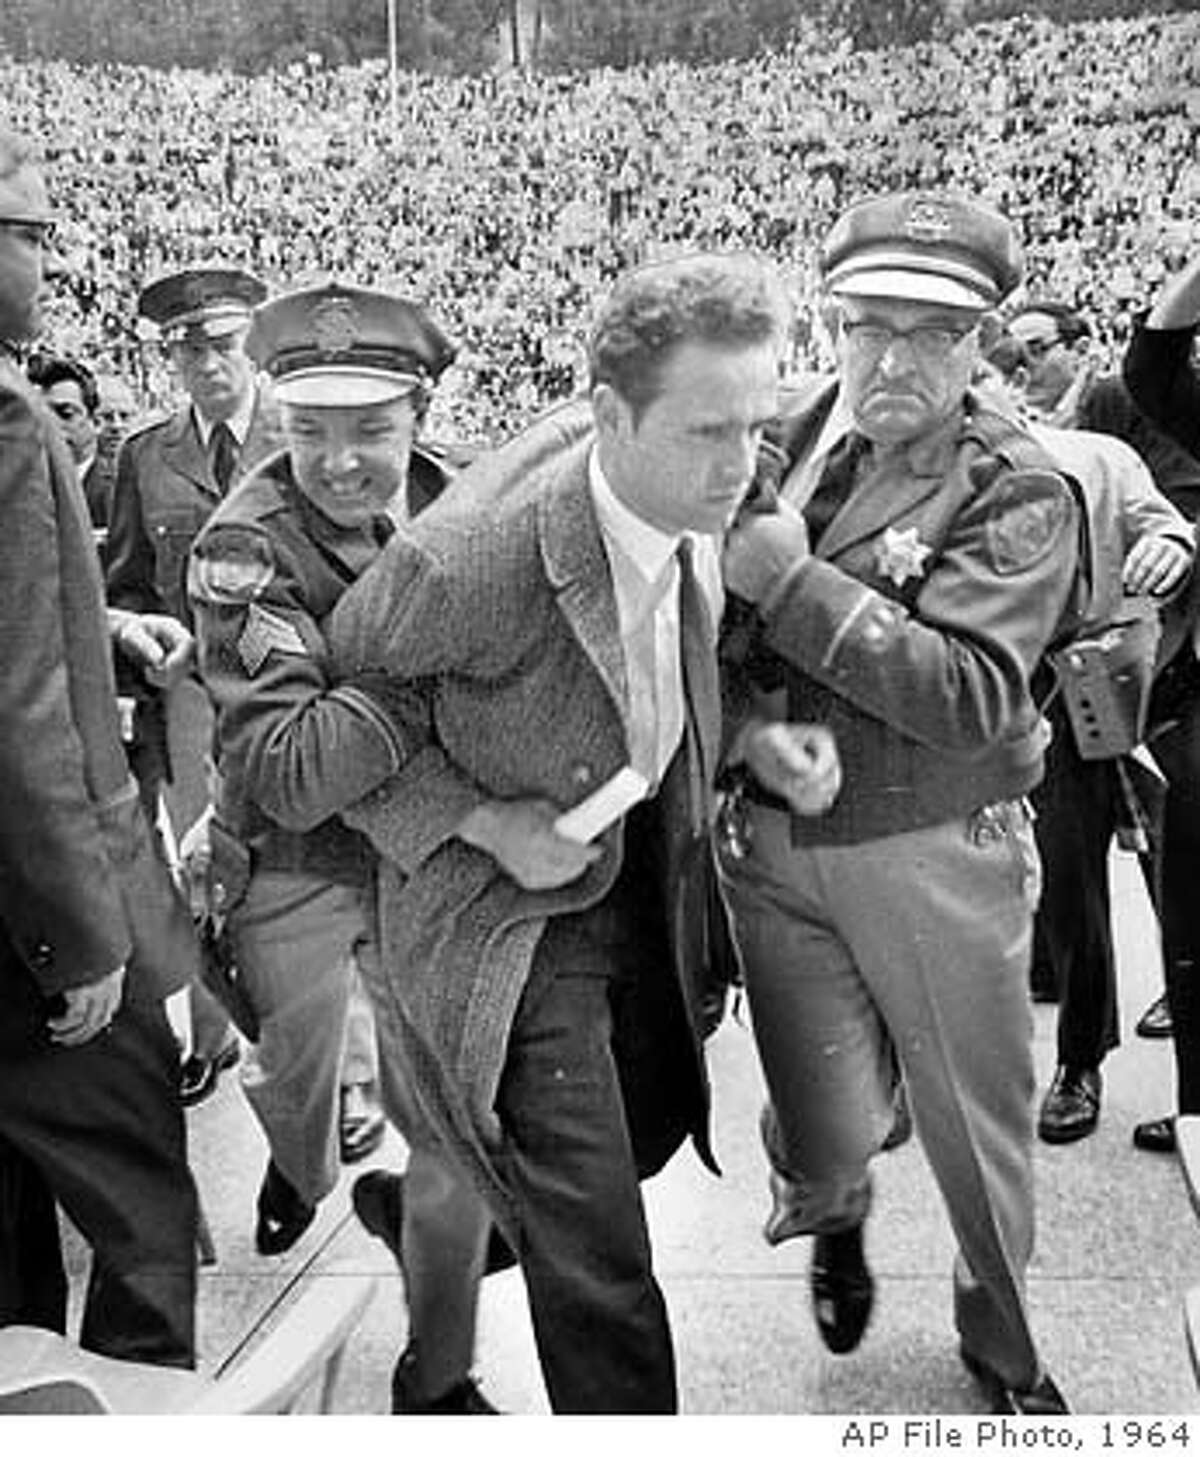 century23/b/07DEC64/SC/AP MARIO SAVIO AT THE UNIVERSITY OF CALIFORNIA CAMPUS RESTRAINED BY POLICE WHEN HE ATTEMPTED TO SPEAK FOLLOWING THE APPEARANCE OF UNIVERSITY PRESIDENT CLARK KERR. CAT